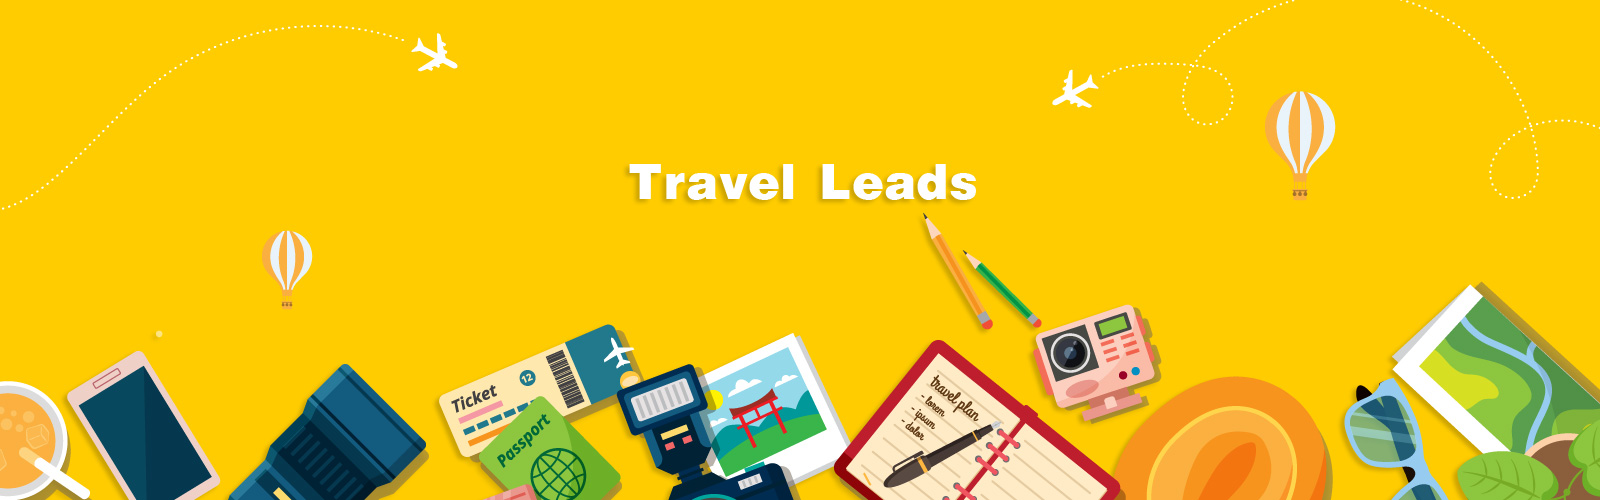 Top 15 Travel Leads Websites for Indian Travel Agents   Trip